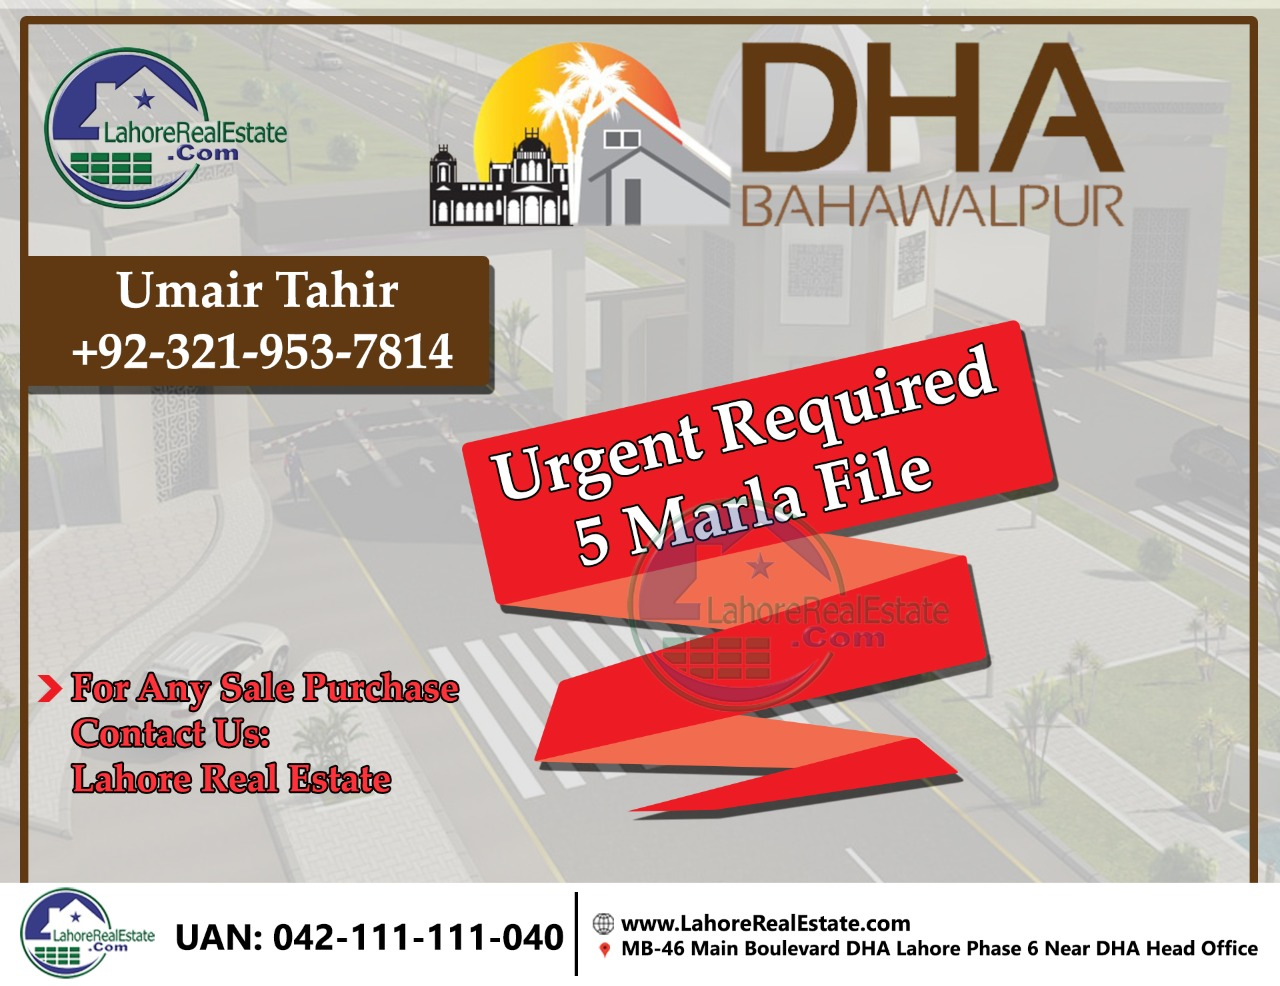 DHA Bahawalpur 5 Marla File Available for Sale